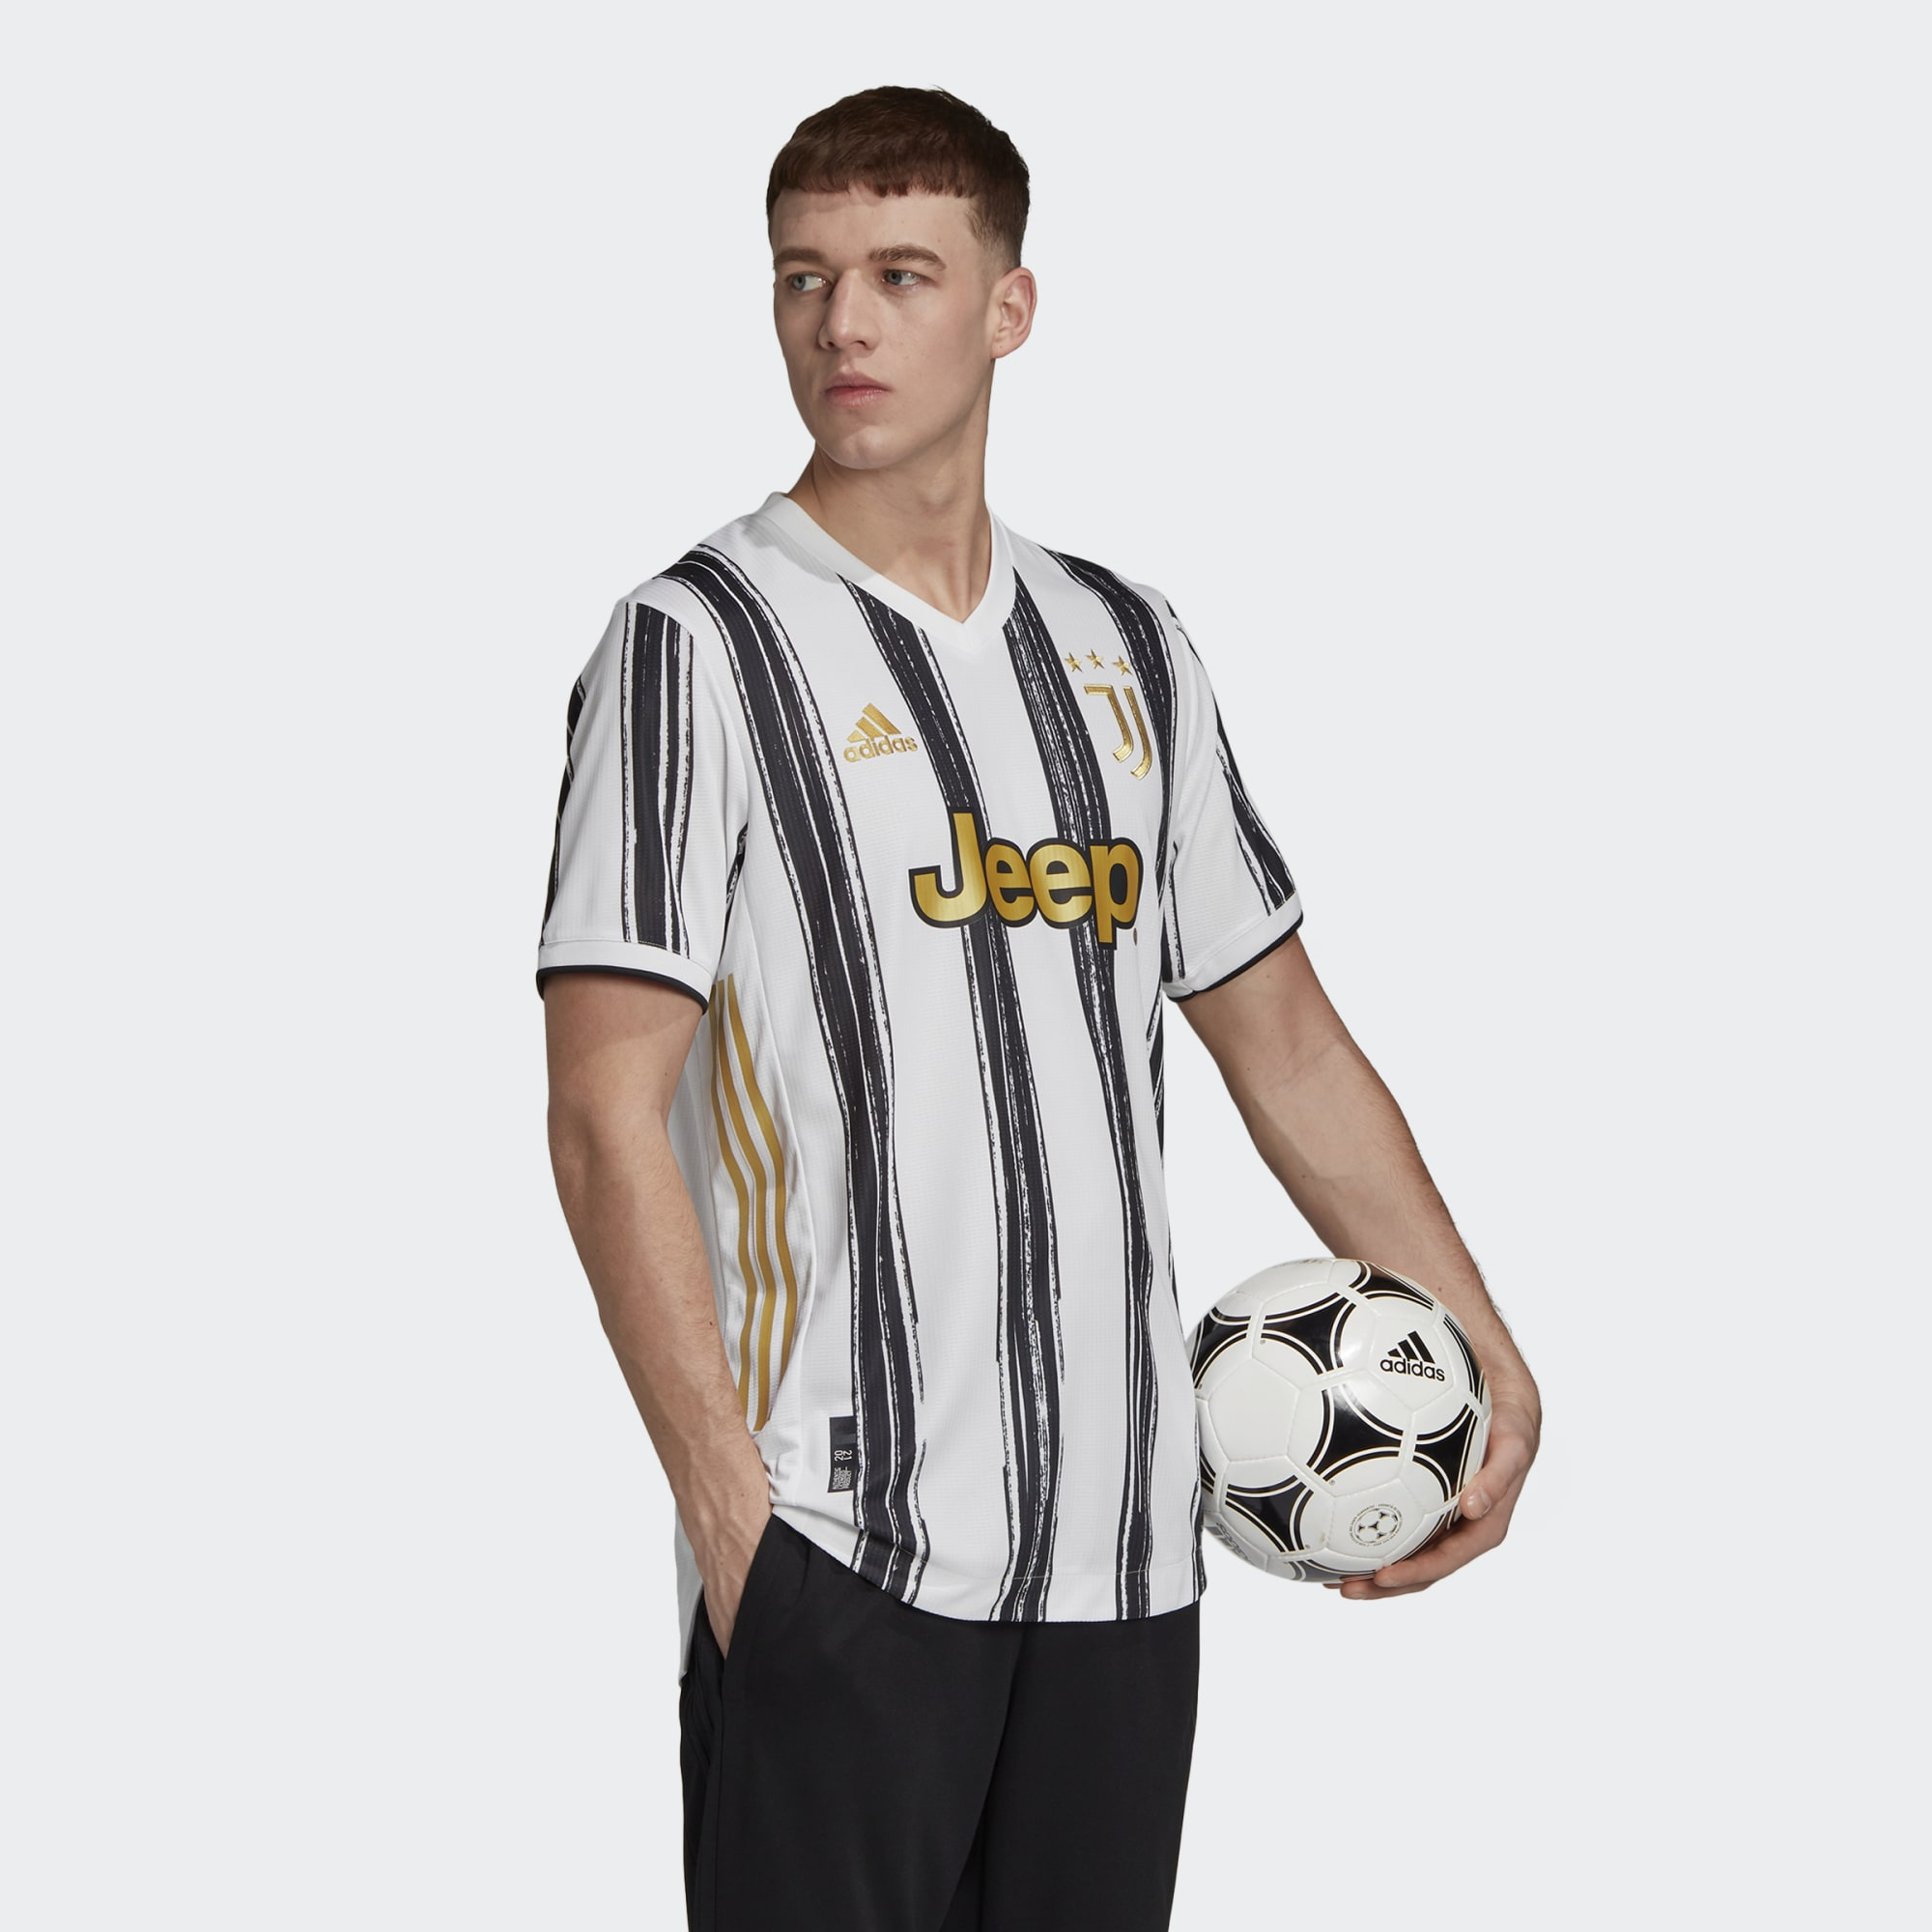 Juventus 2020 21 Adidas Home Kit 20 21 Kits Football Shirt Blog